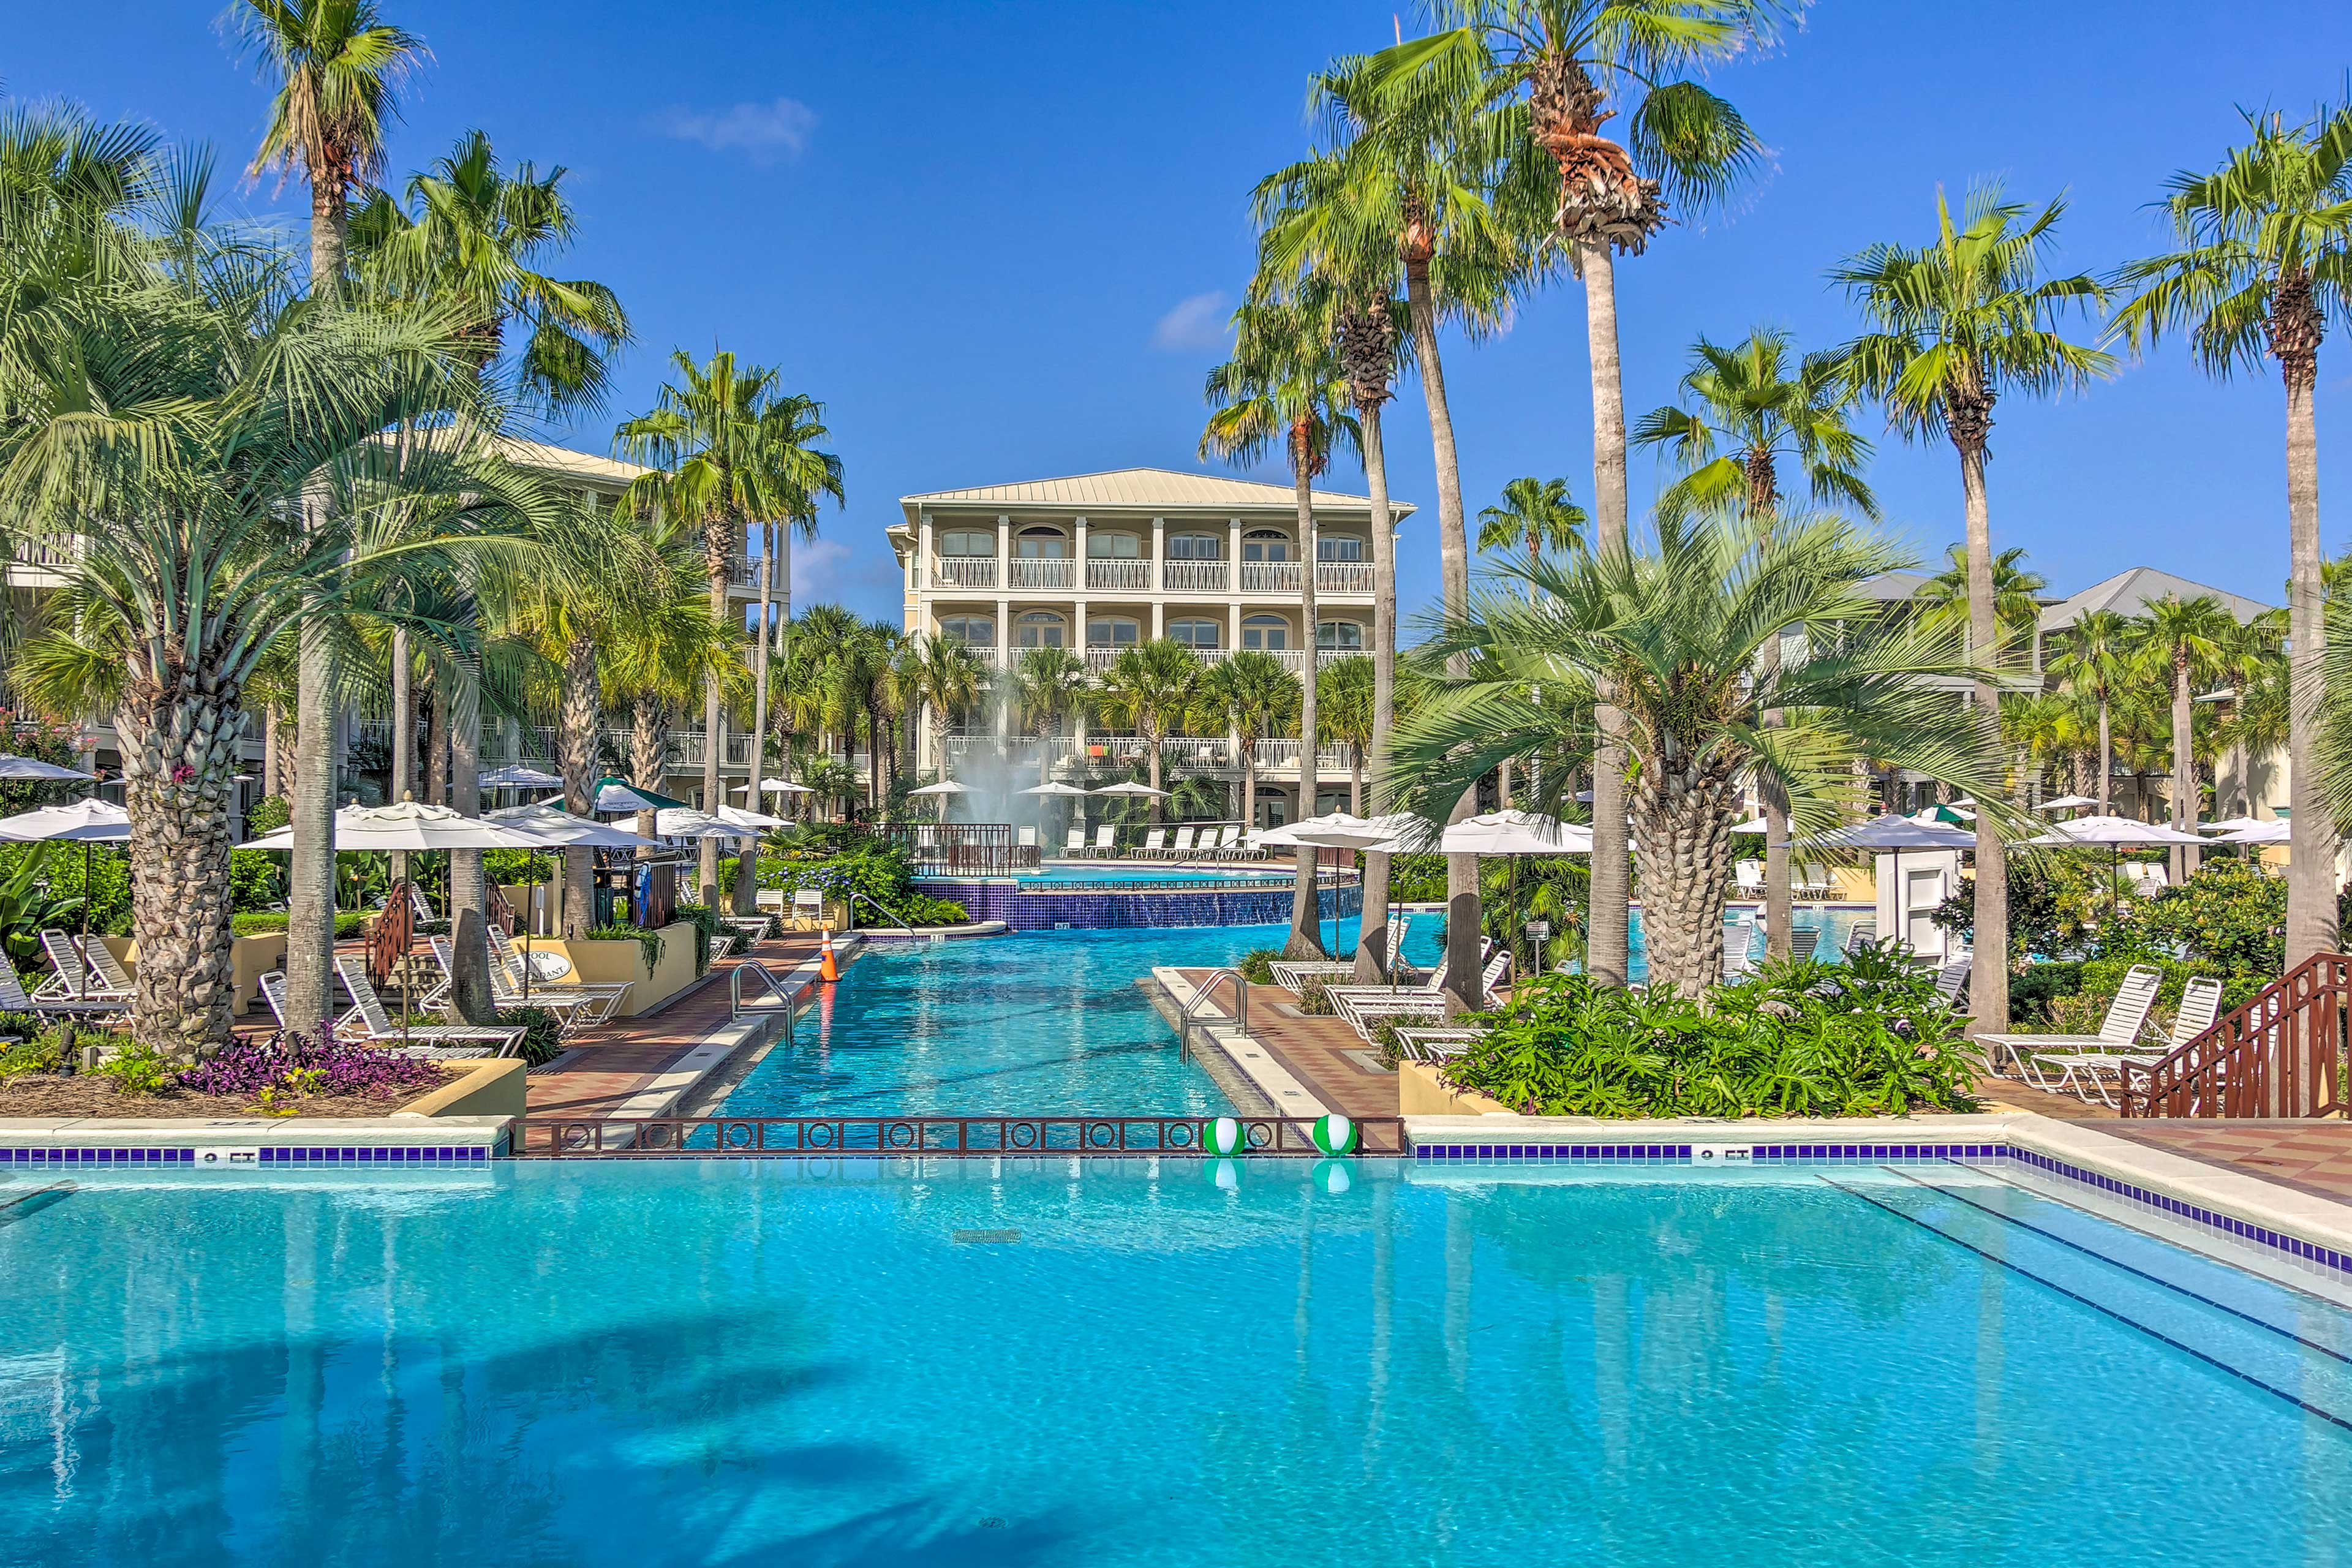 This expansive pool area features multiple lounge areas.